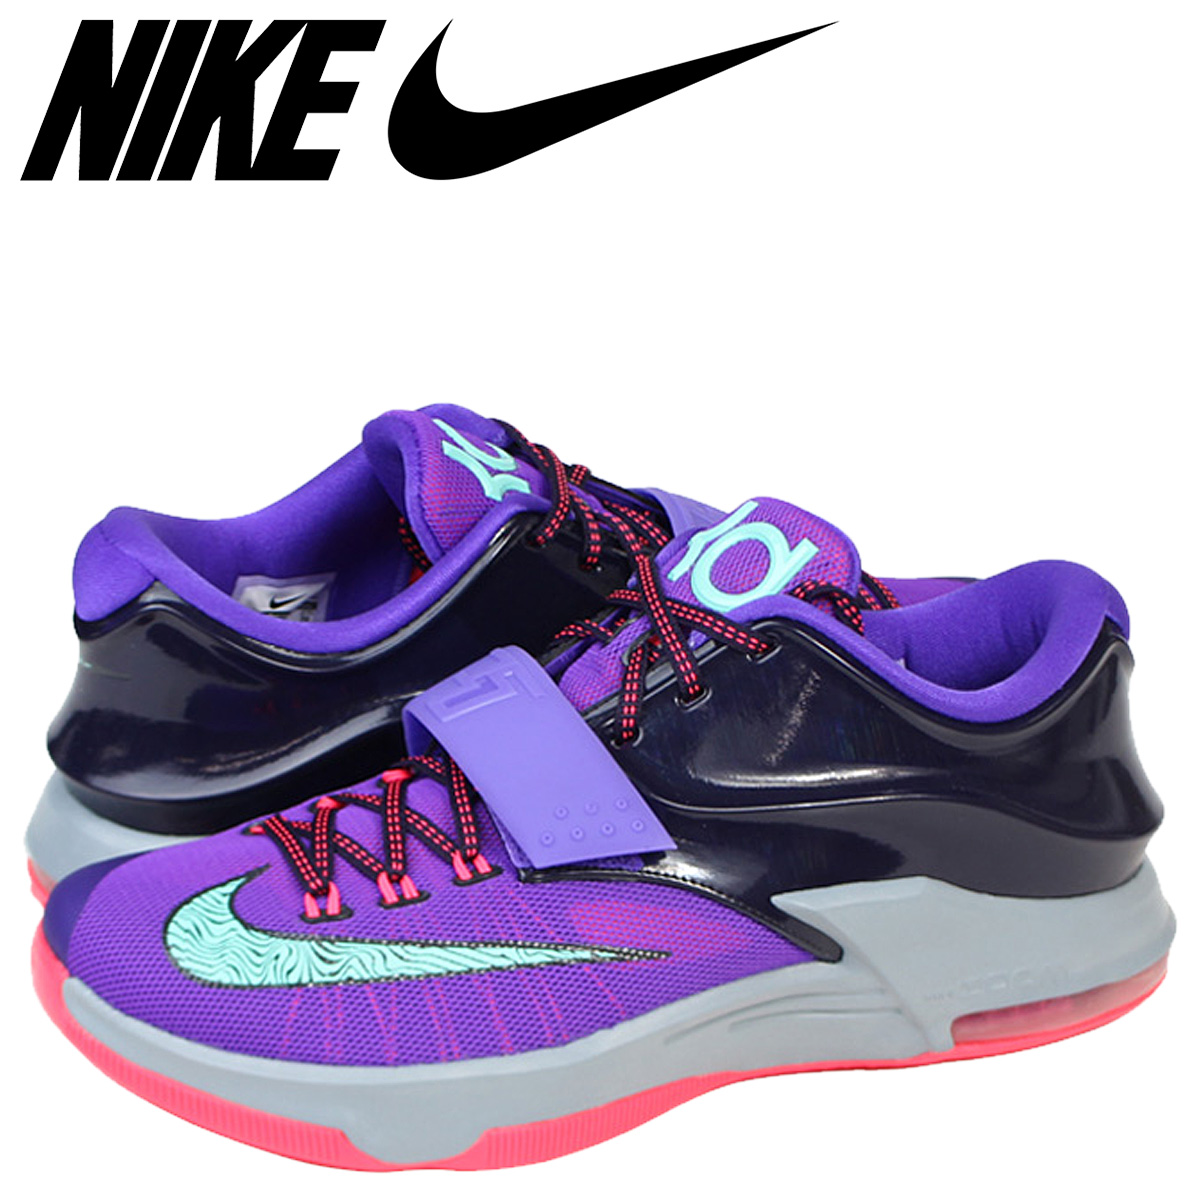 best service 00157 f77d1 Nike NIKE model sneakers KD VII Kevin Durant 7 Limited Edition 653996-535  purple mens ...